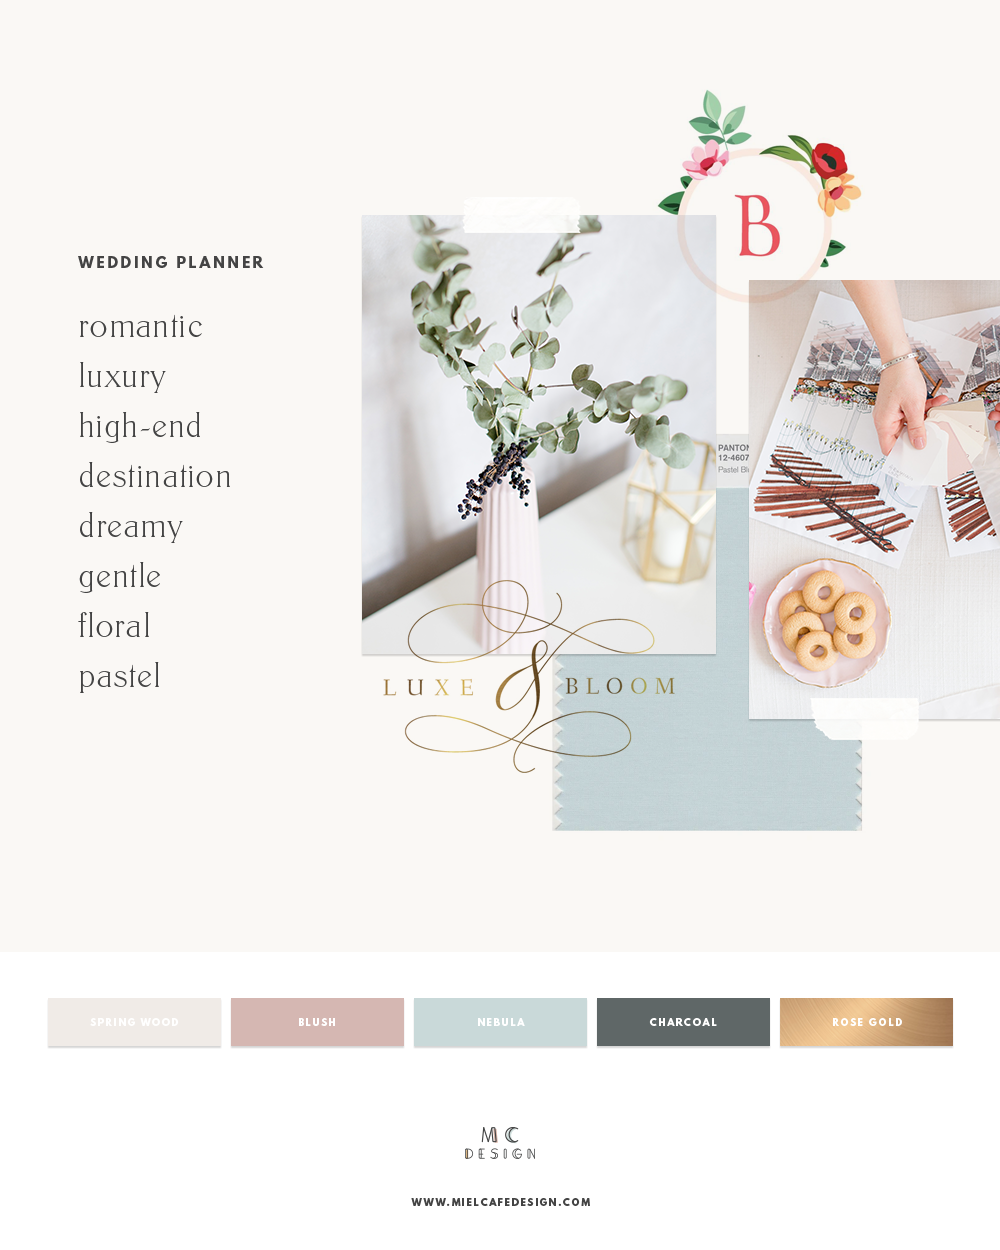 How to create your wedding planner brand - Visualise: romantic, luxury, dreamy, pastel, floral wedding planner mood board and color palette